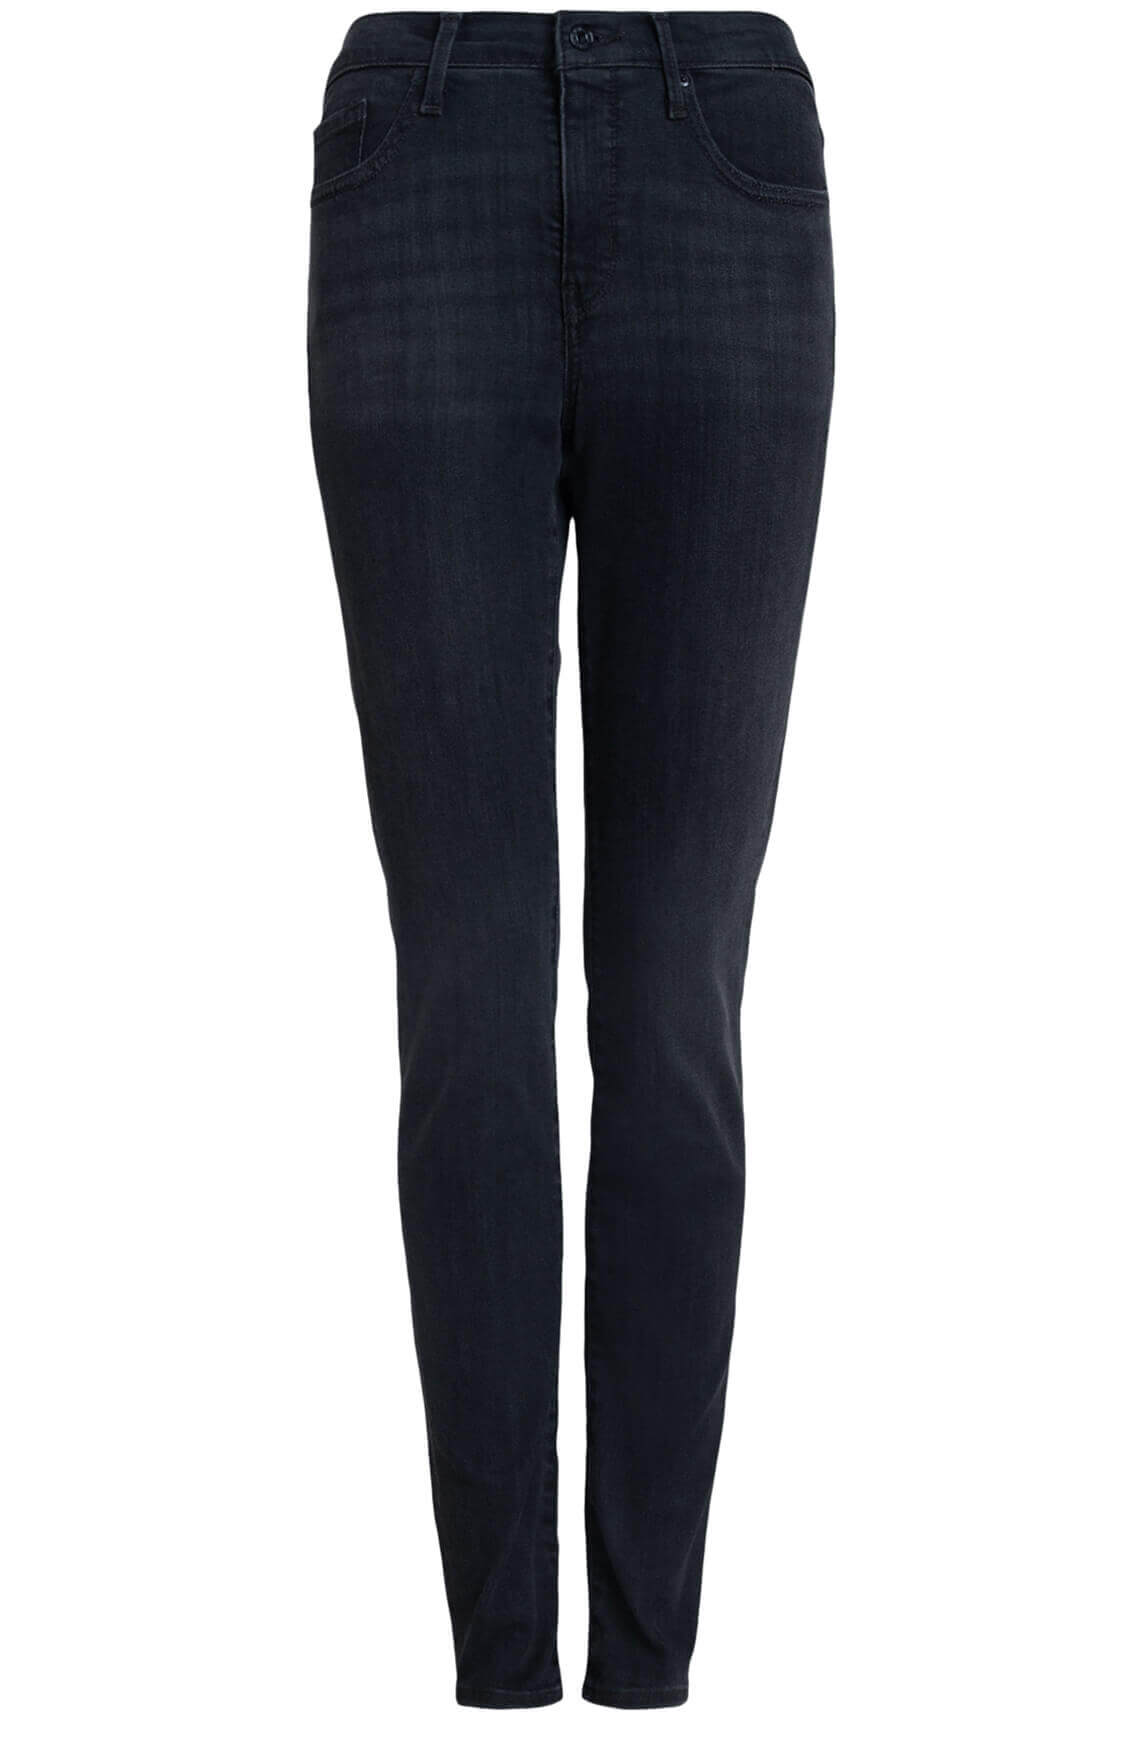 Levi s Dames 311 L30 shaping skinny jeans Grijs